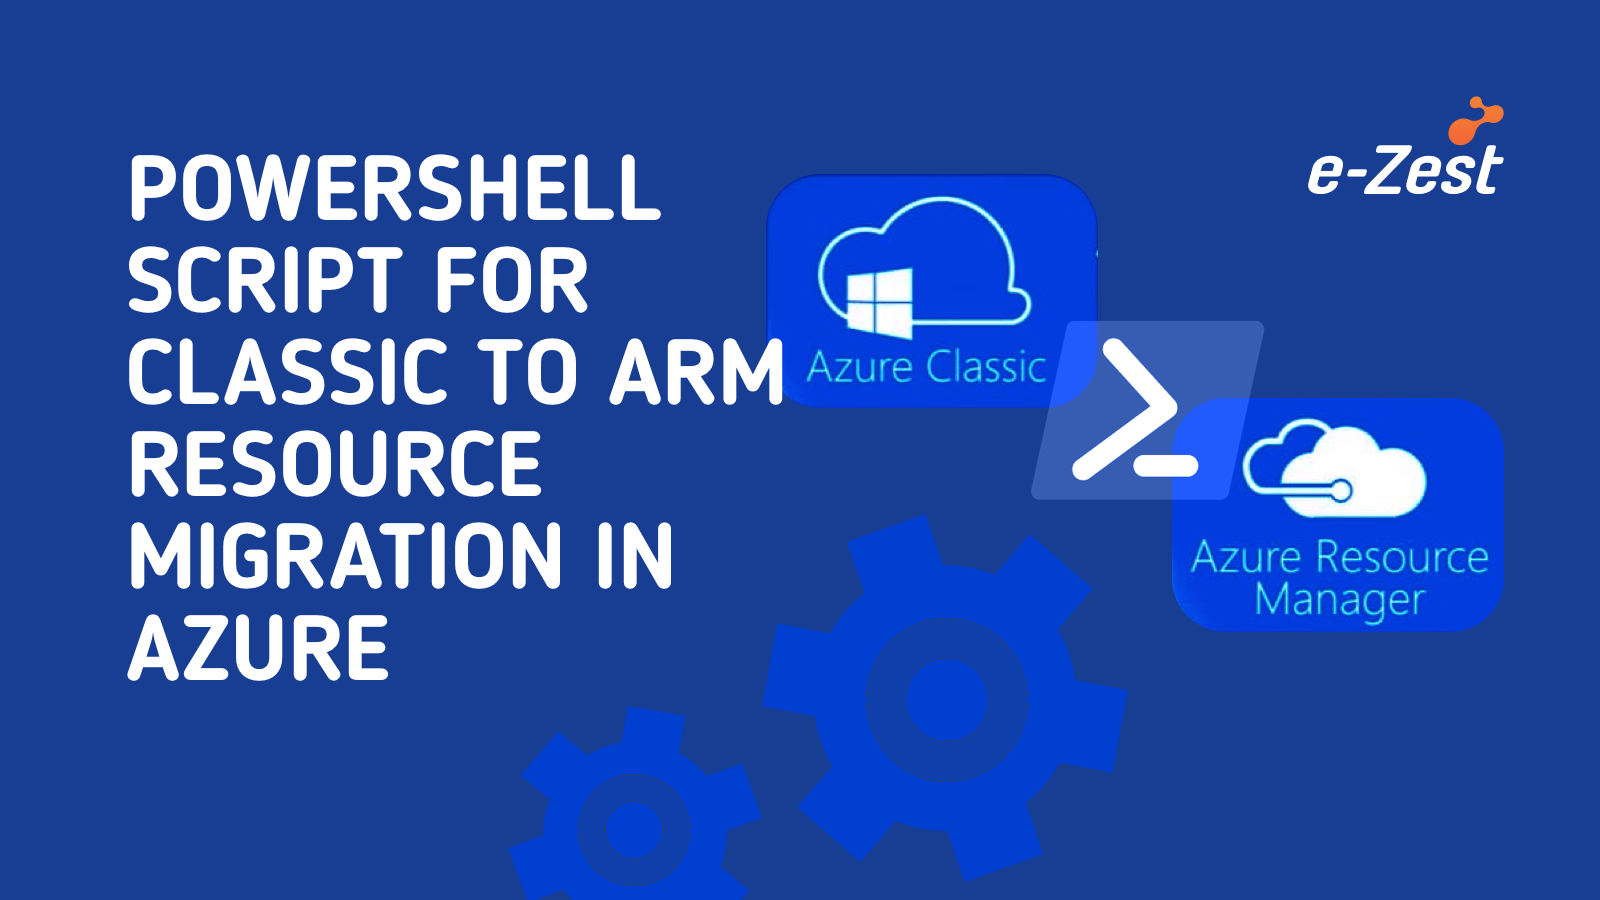 PowerShell Script for migrating Azure Classic to Azure Resource Manager